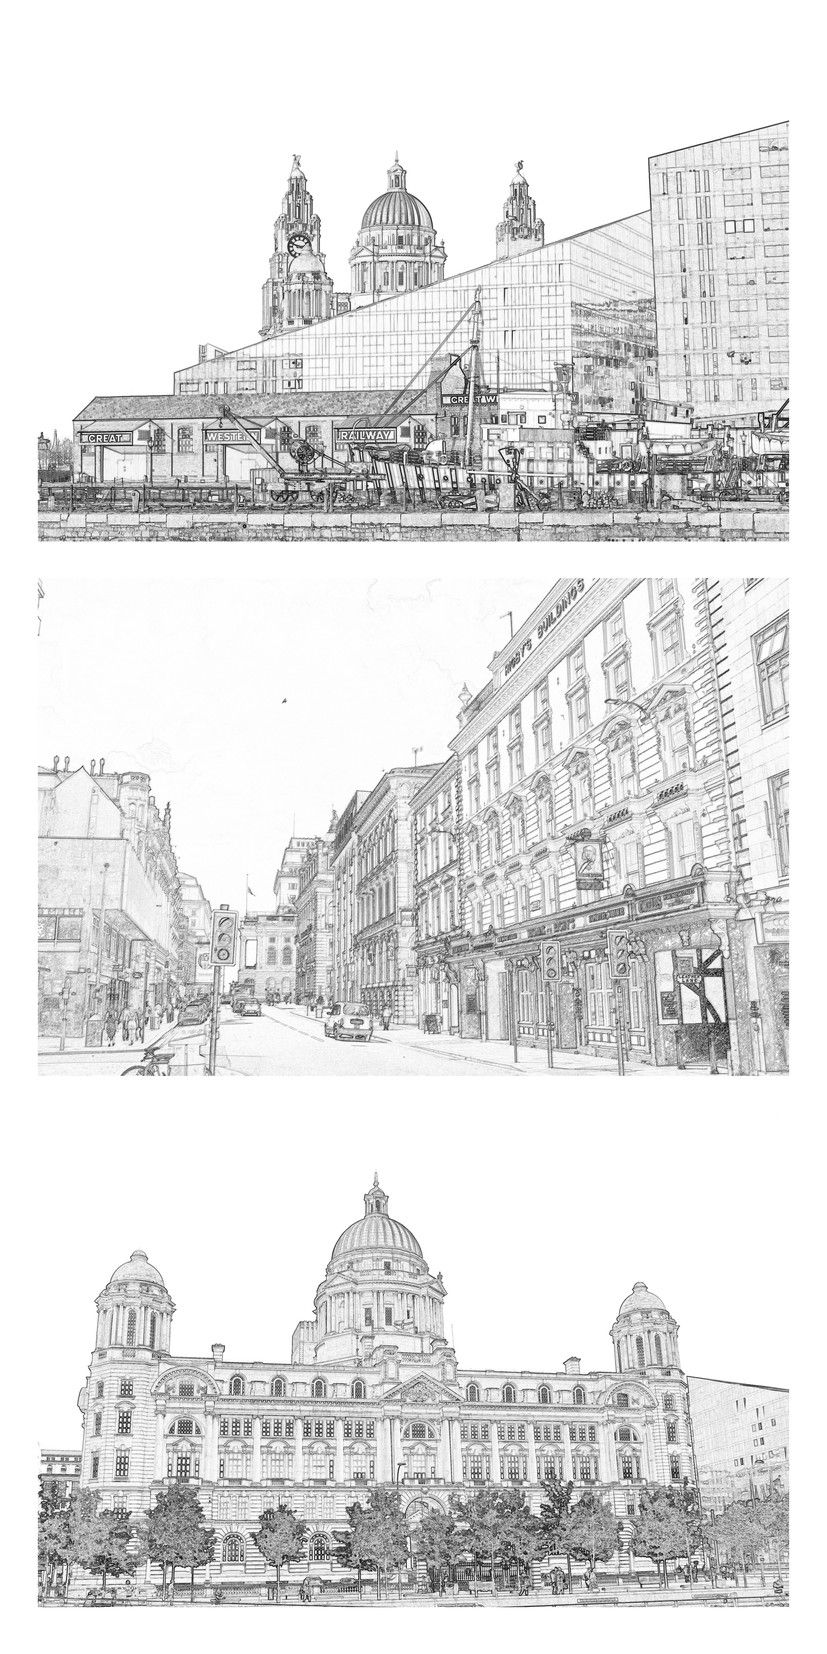 Liverpool Greyscale Colouring Book Download 6 Illustrations